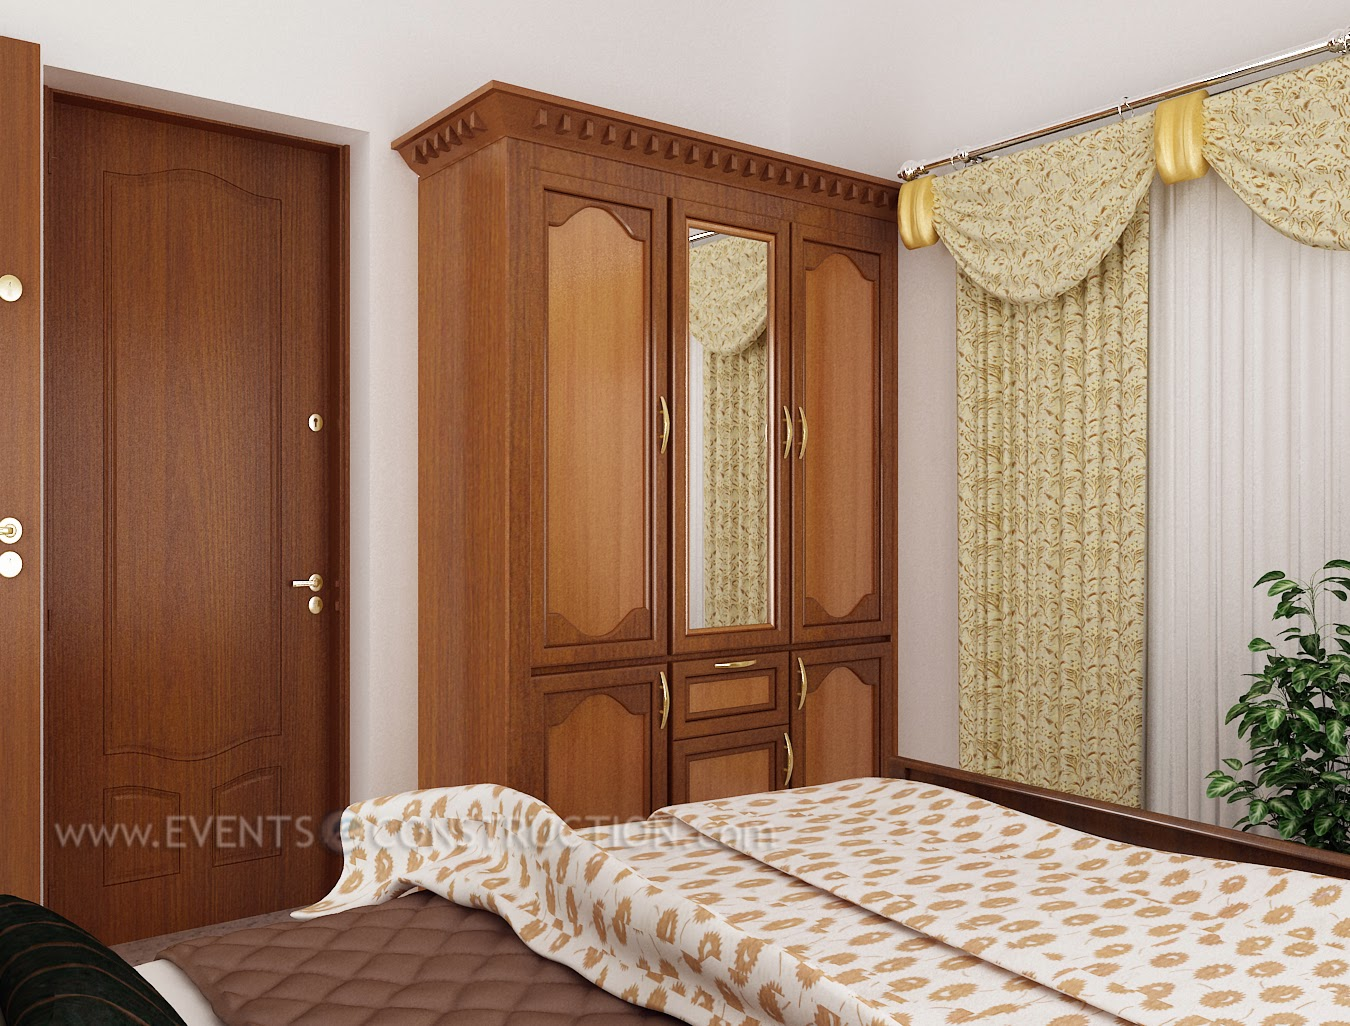 Very Impressive portraiture of Evens Construction Pvt Ltd: Wooden wardrobe in bedroom with #A27F29 color and 1350x1026 pixels